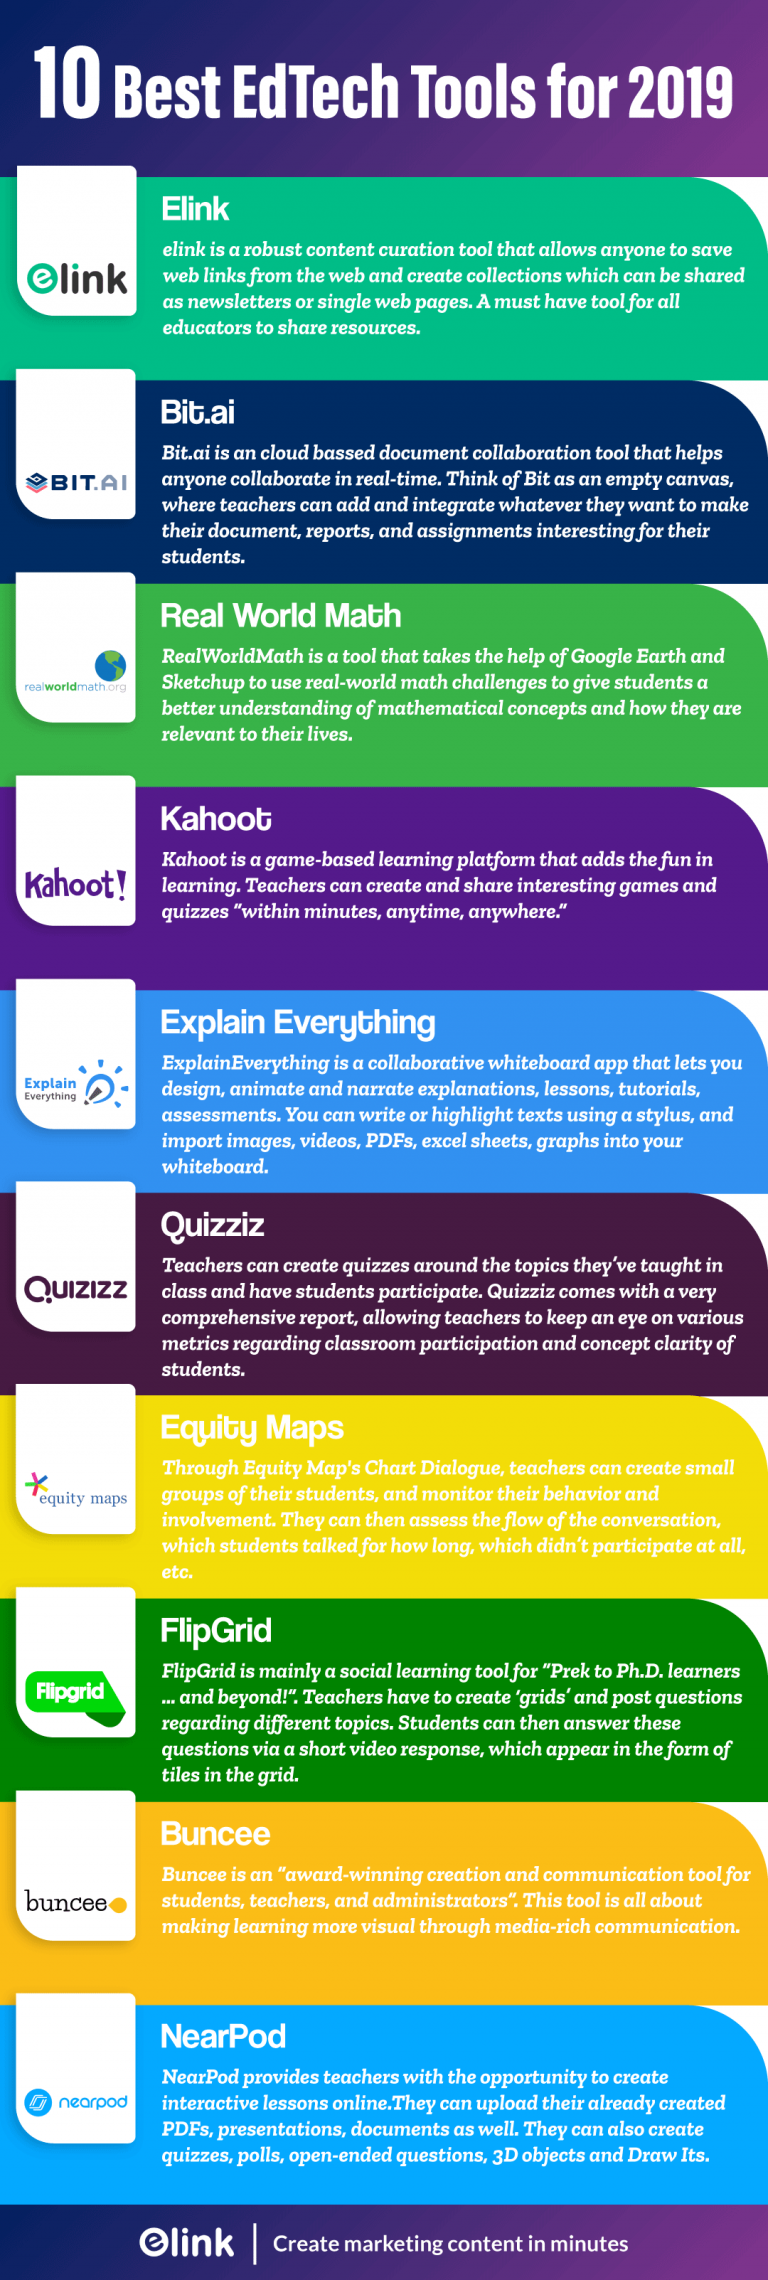 10-Best-EdTech-Tools-for-2020- Infographic